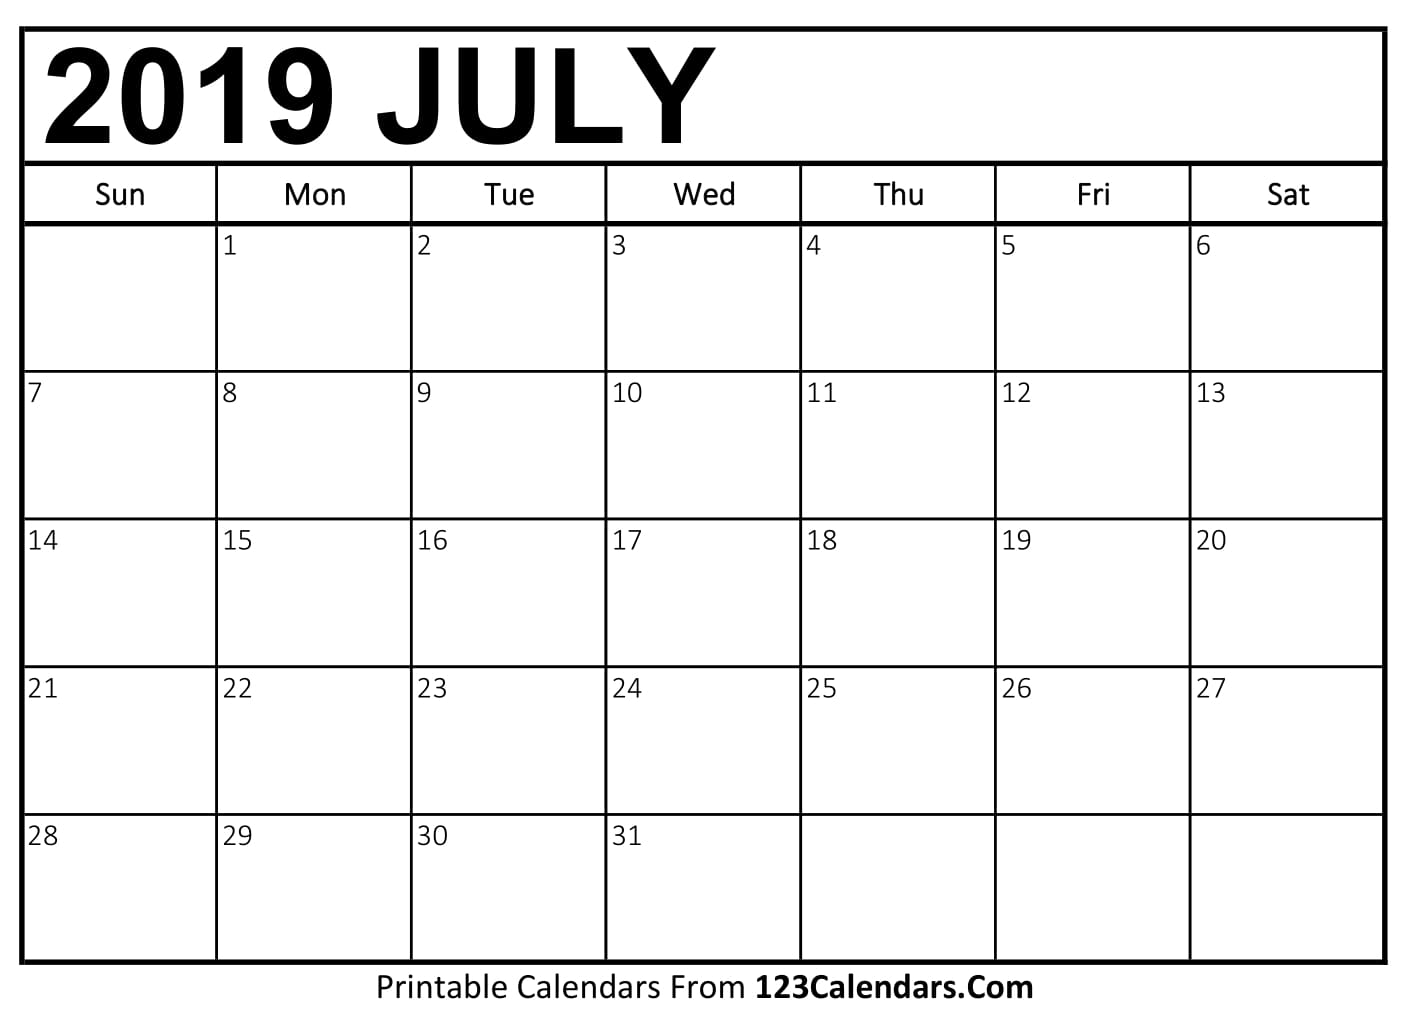 Printable July 2018 Calendar Templates - 123Calendars.Com